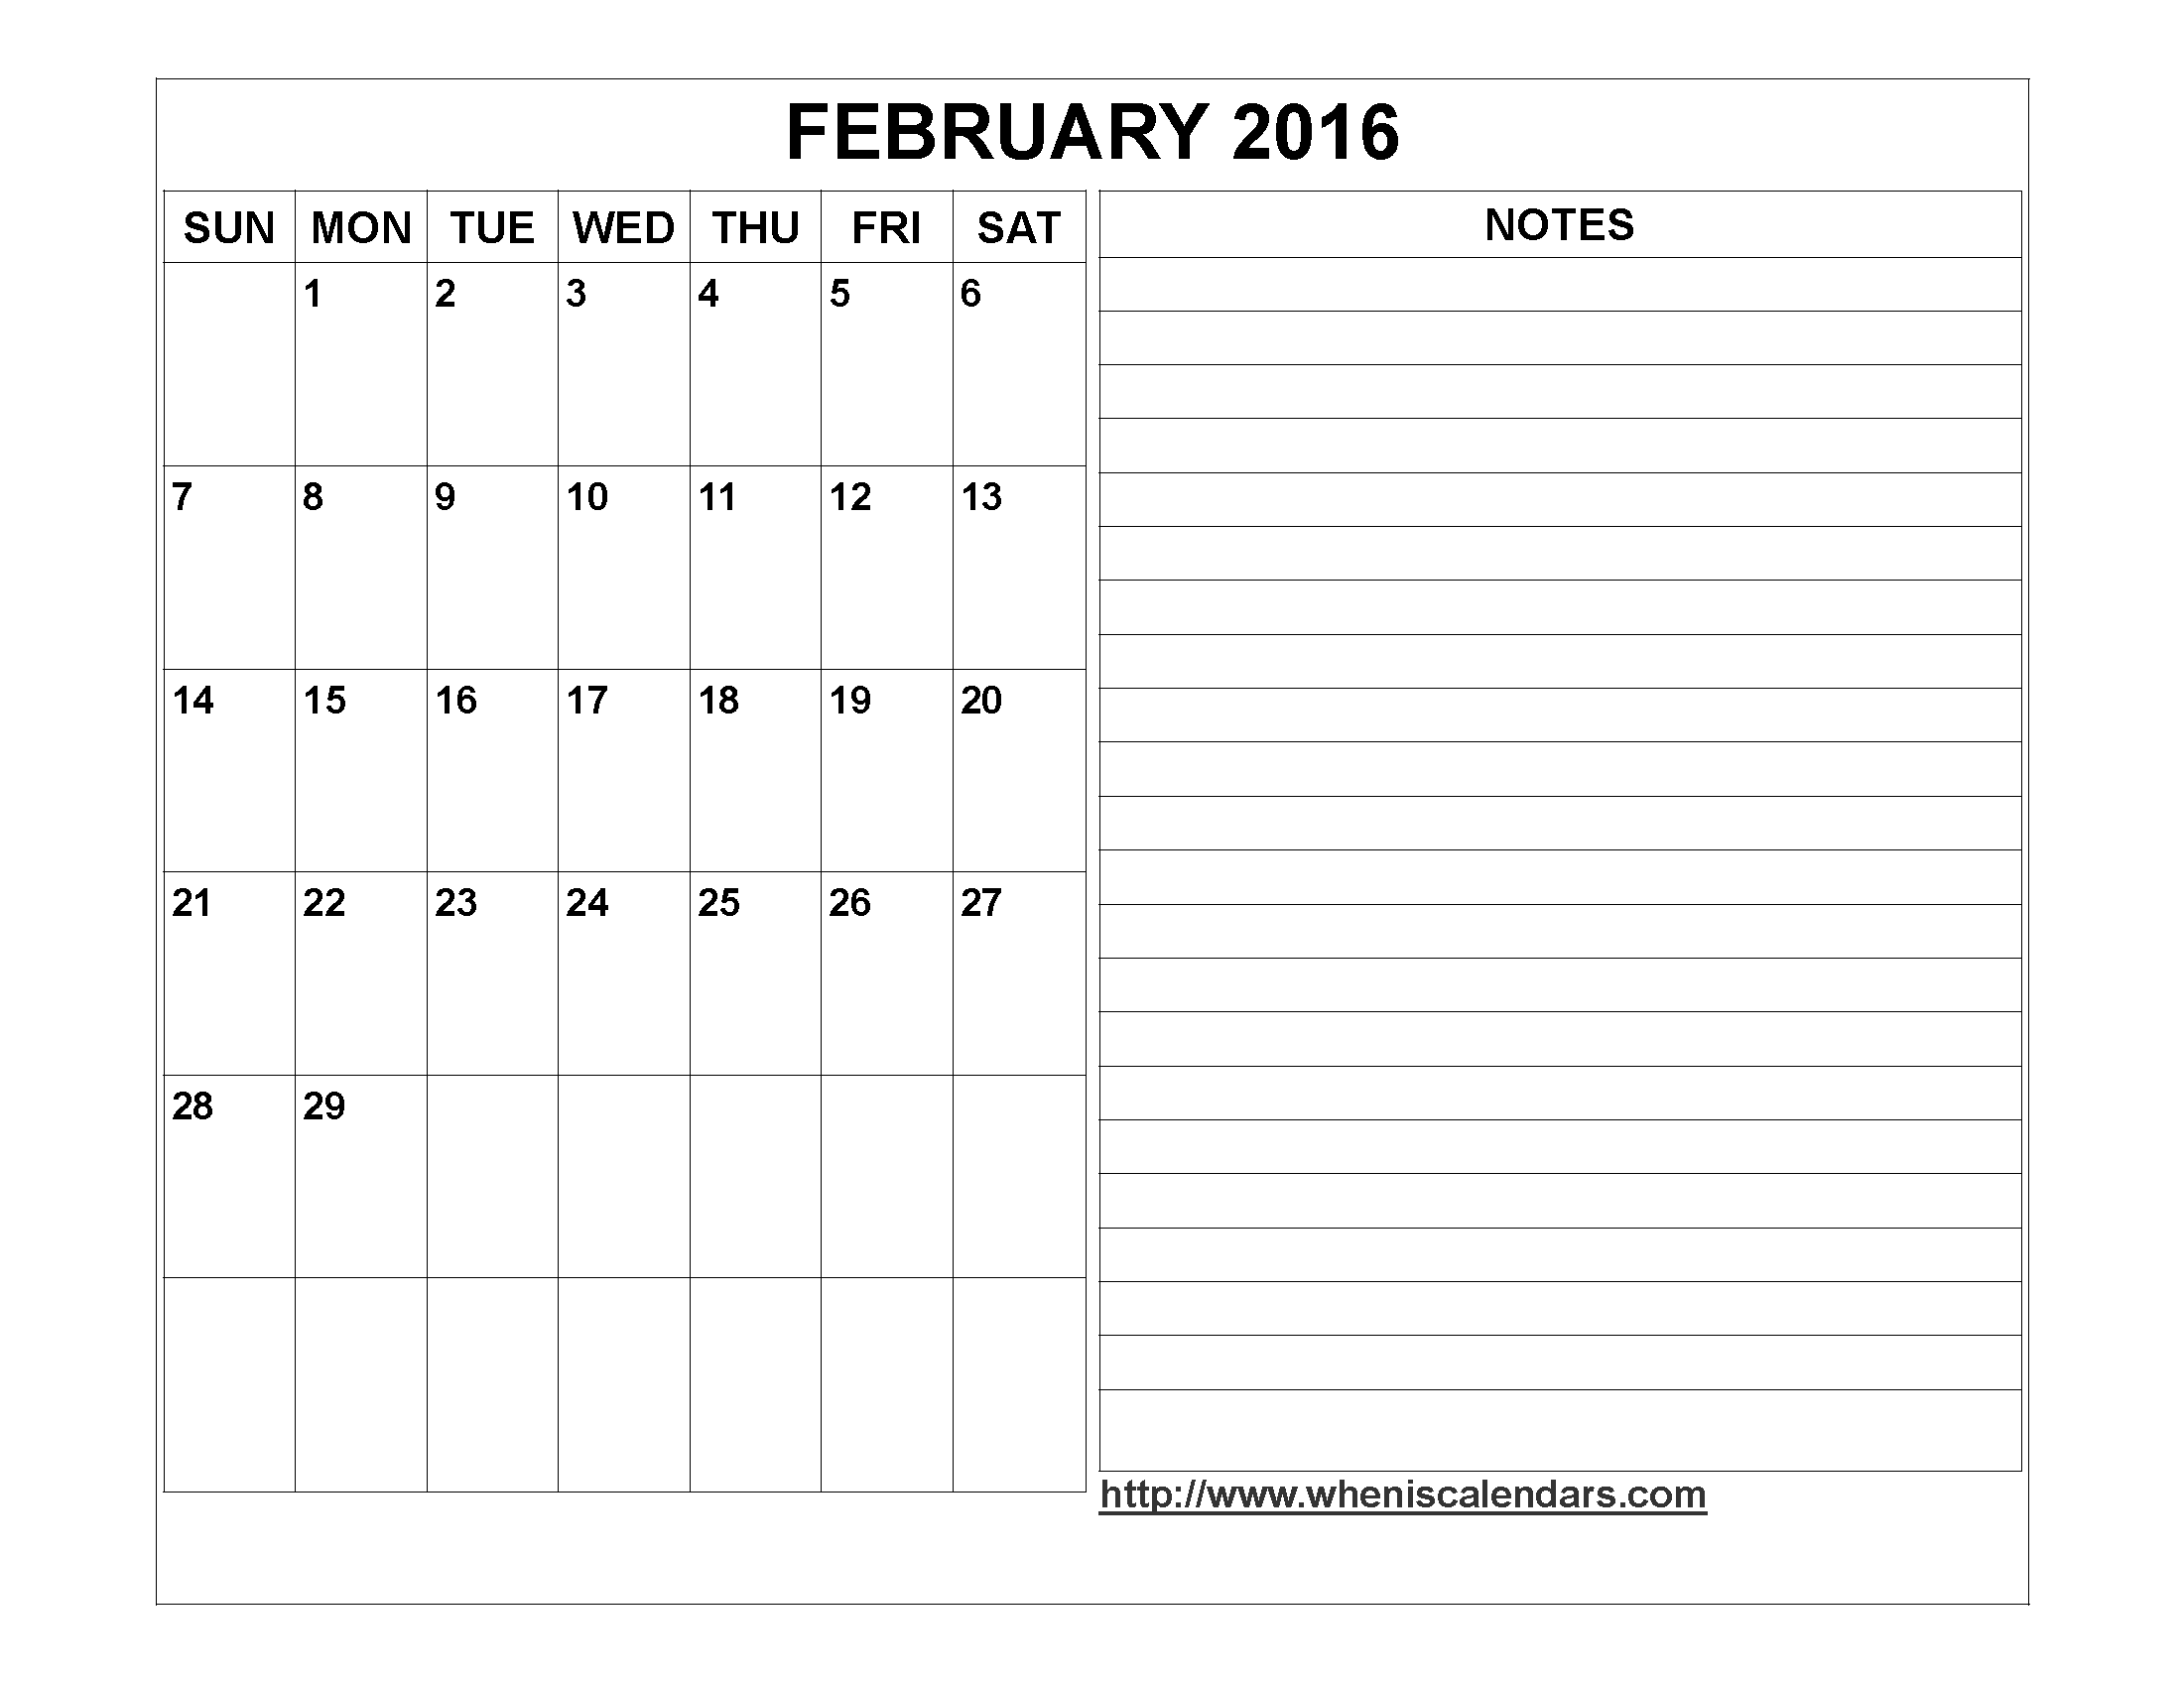 Calendar Templates With Notes : Calendar template with notes section